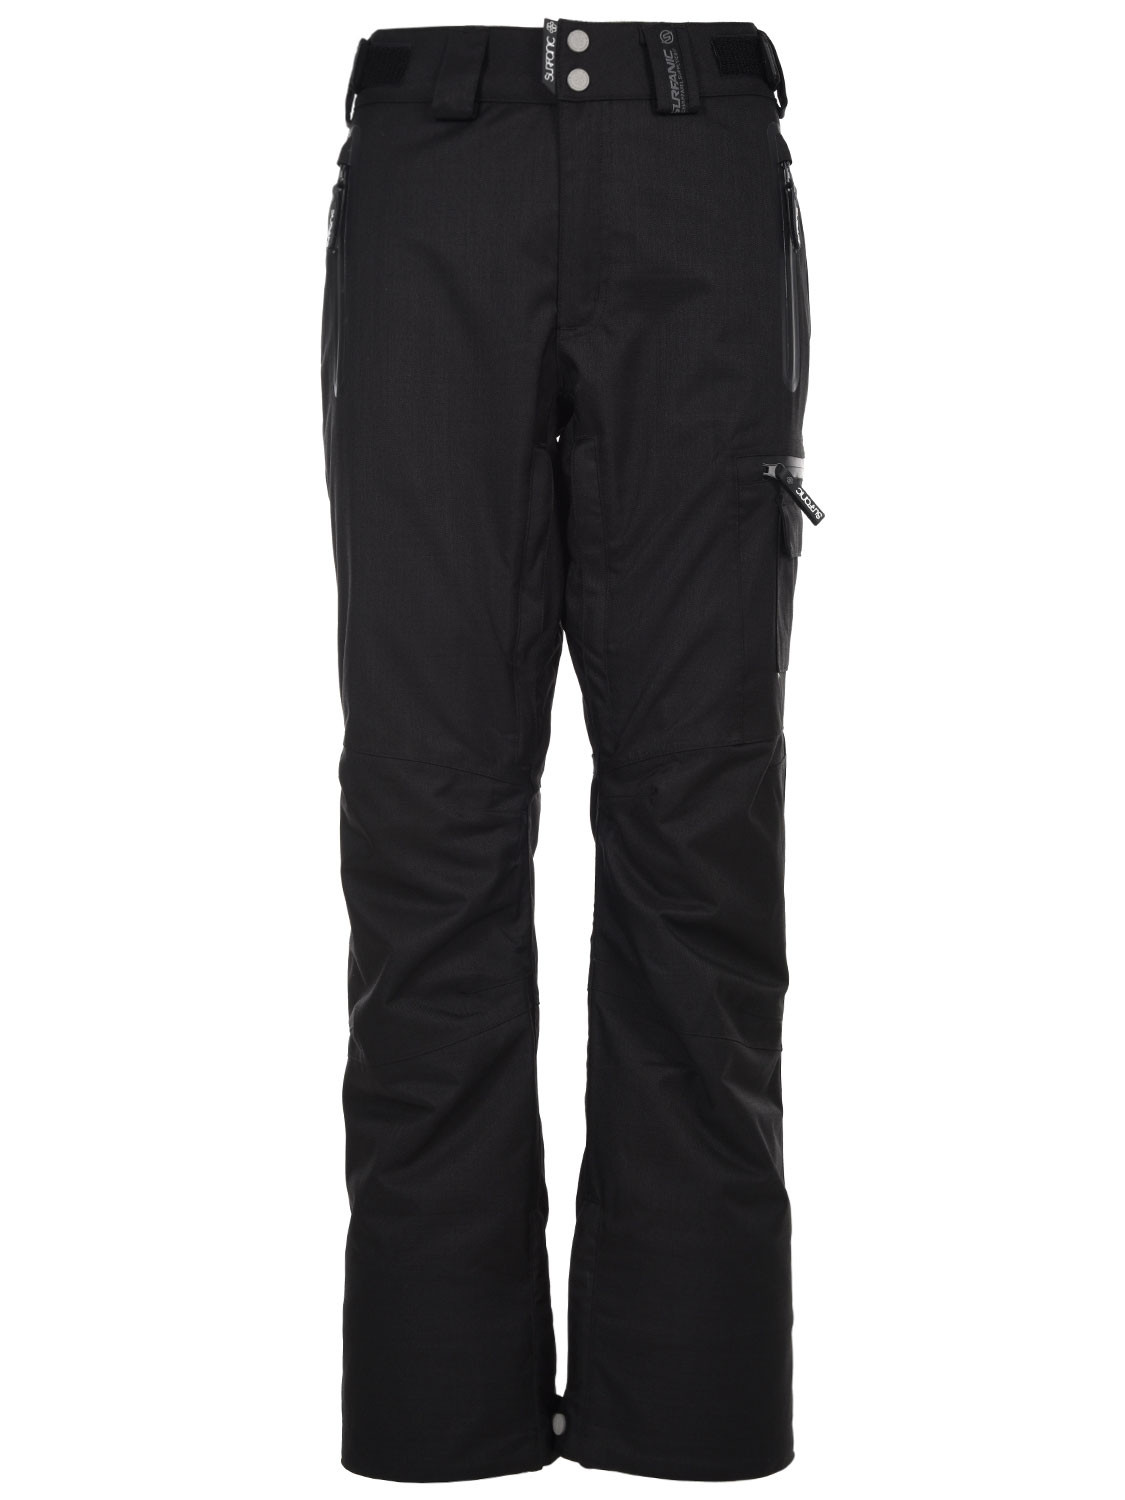 Shine Surftex Ski Pant